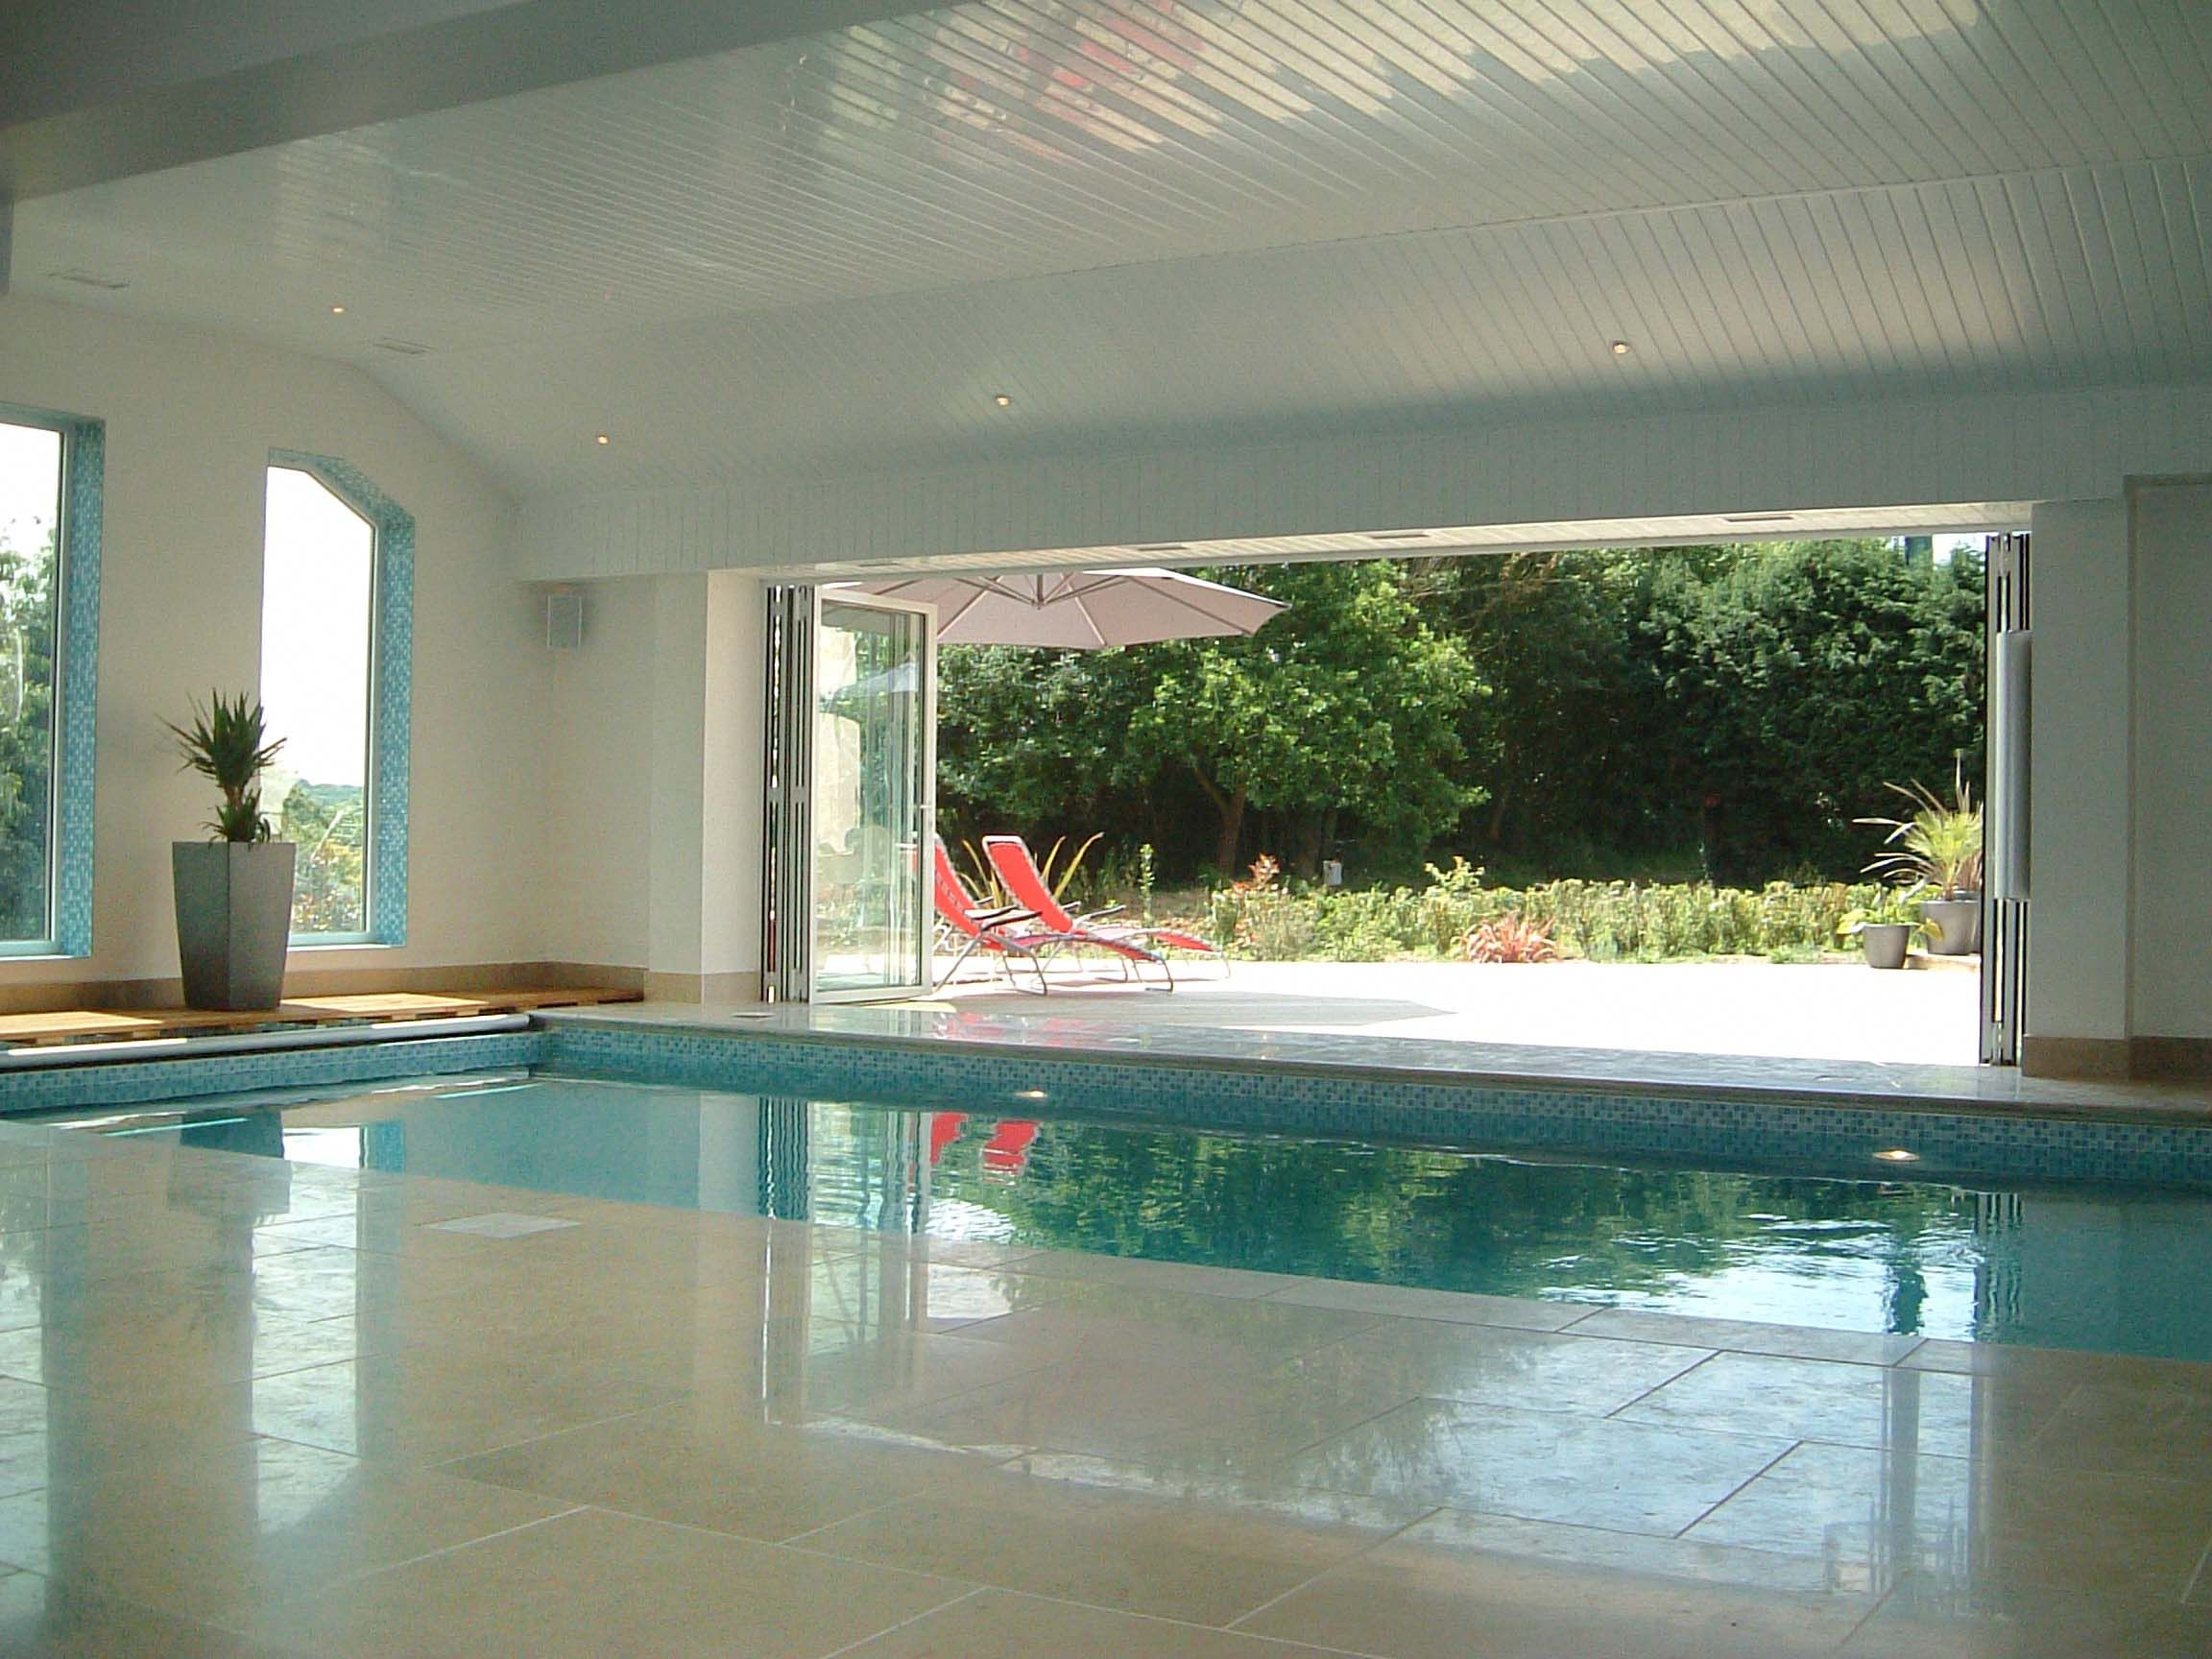 Pool Privat Bauen Private Swimming Pool 18 Private Indoor Pool Designhome